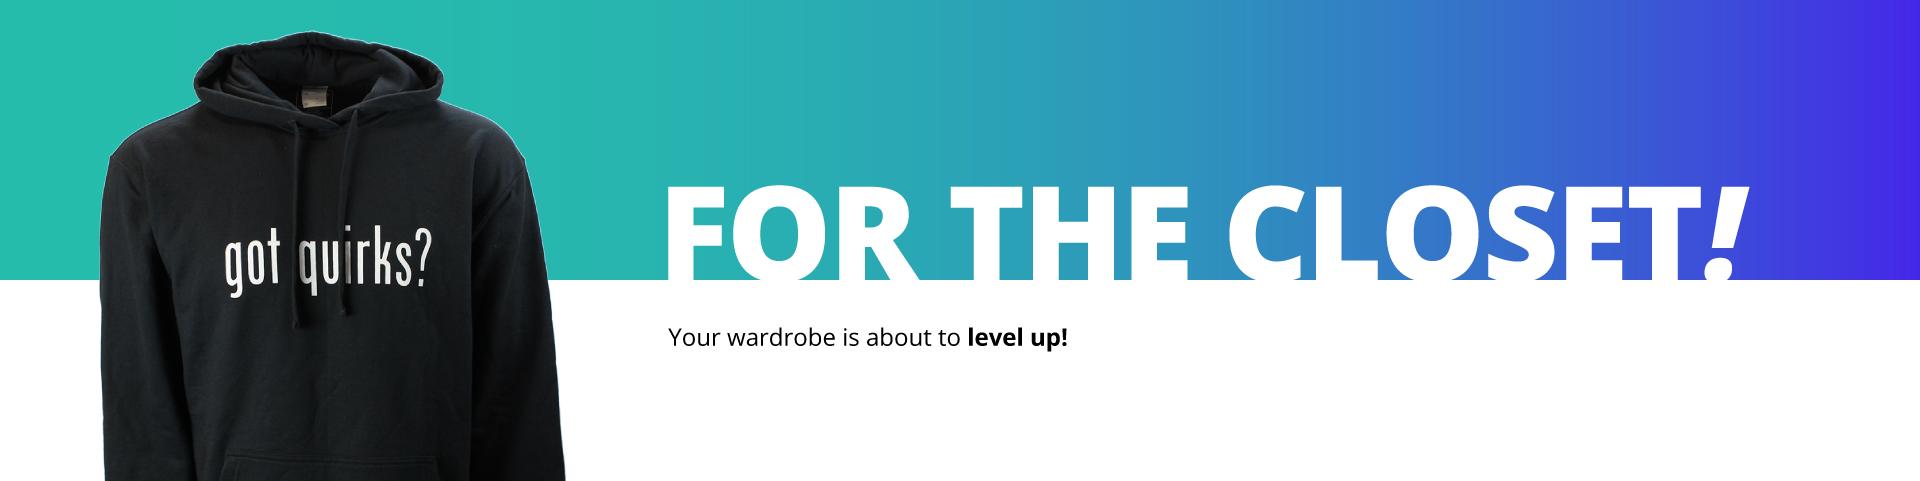 FOR THE CLOSET! Your wardrobe is about to level up!